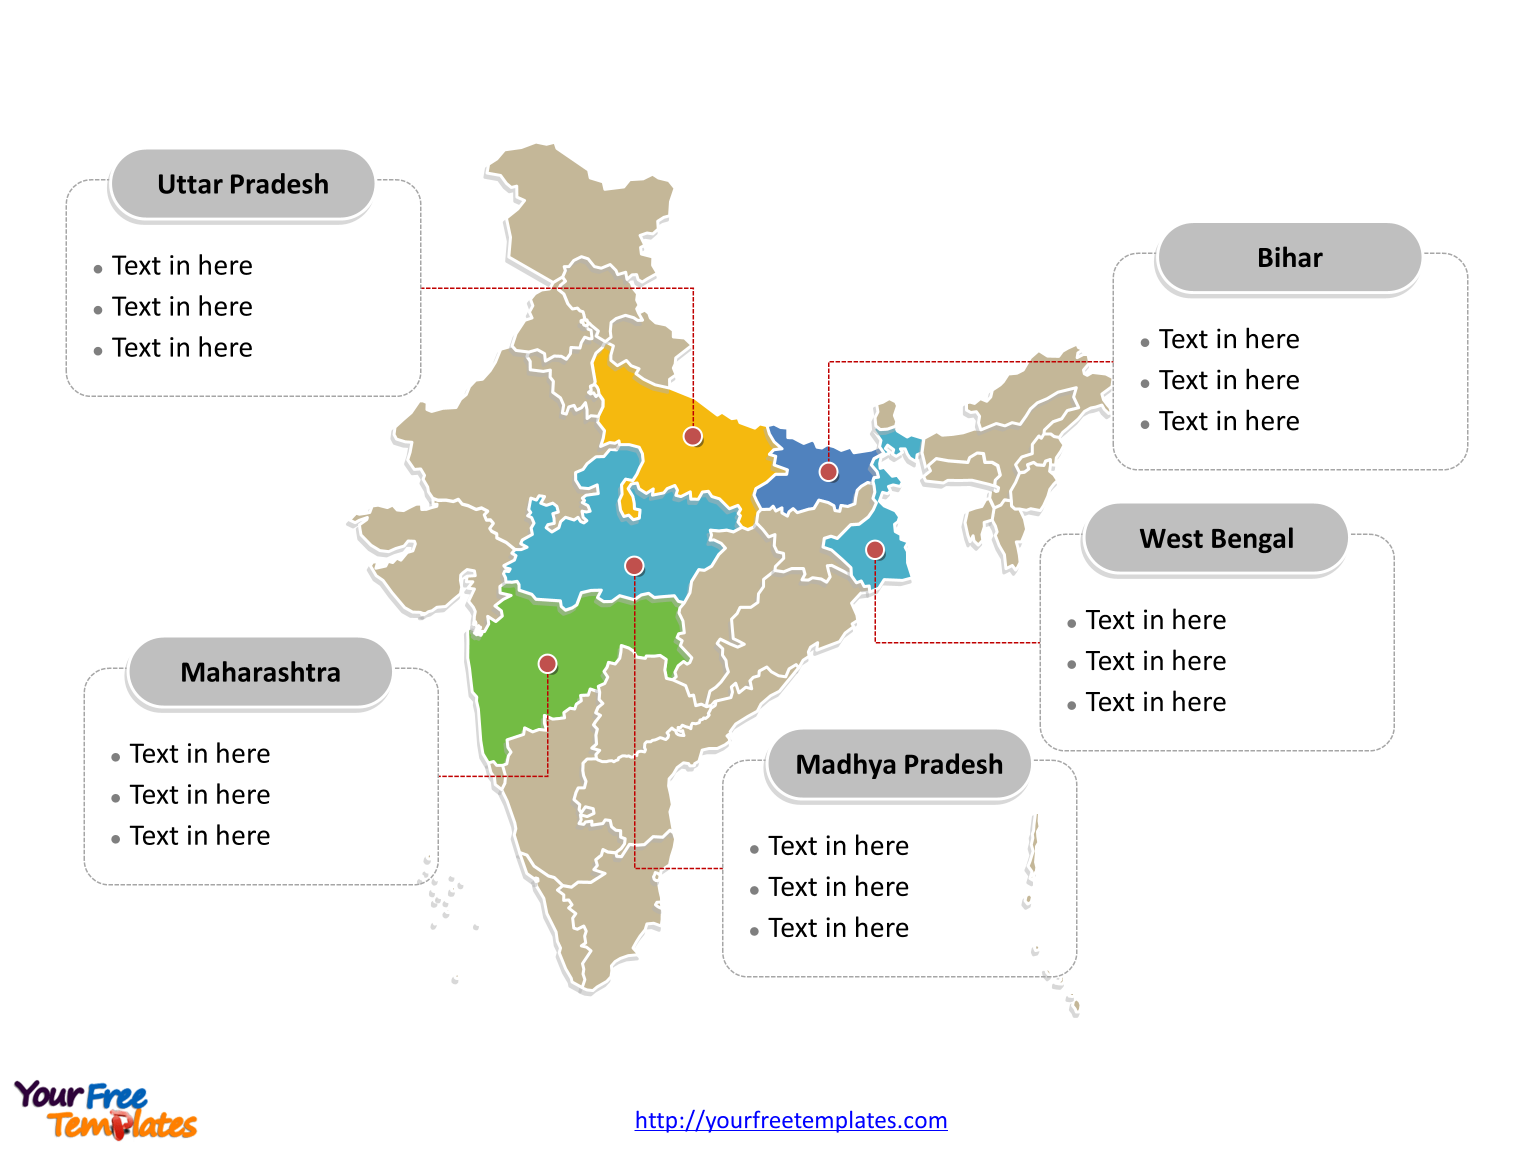 India Map blank templates - Free PowerPoint Templates on outline map of afghanistan, outline map of india, outline map of the united kingdom, outline map of gaza strip, outline map of western united states, outline map of united states of america, outline map of yugoslavia, outline map of the u.s.a, outline map of new england states, outline map of armenia, outline map of burma, outline map of nordic countries, outline map of the cayman islands, outline map of gabon, outline map of ethiopia, outline map of former soviet union, outline map of mughal empire, outline map of vanuatu, outline map of lithuania, outline map of gambia,